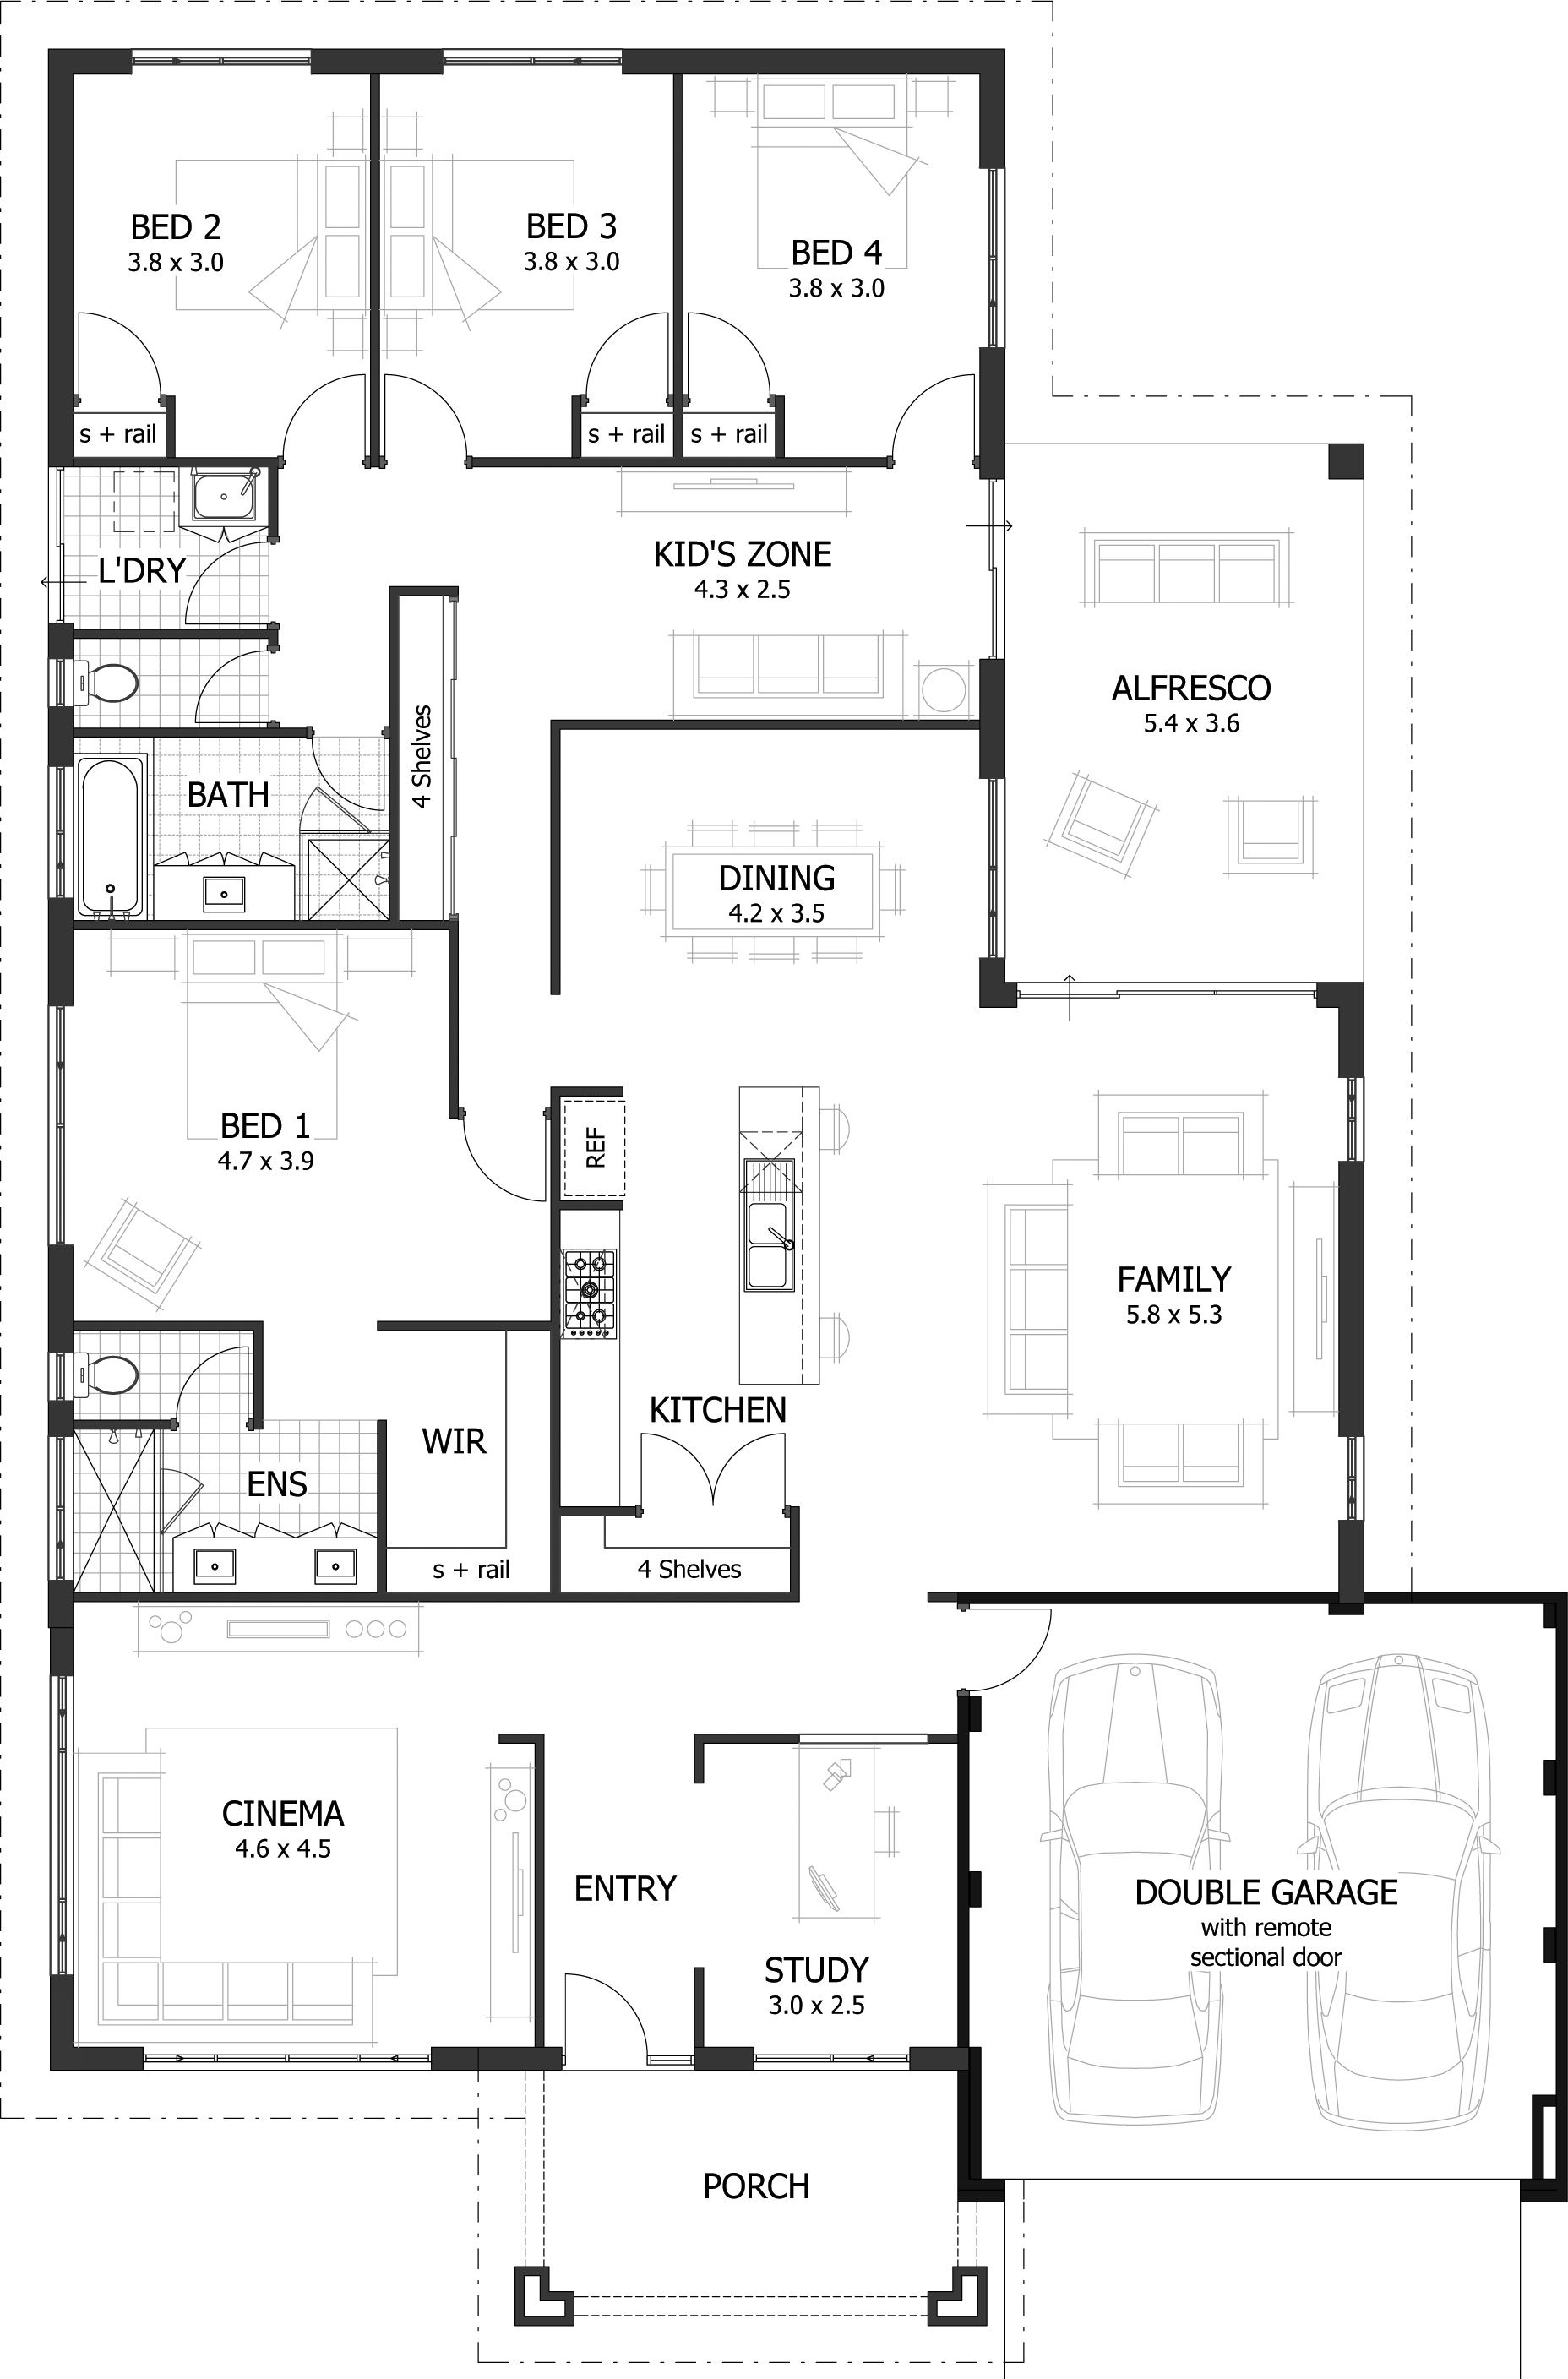 4 Bedroom House Plans Home Designs Celebration Homes X